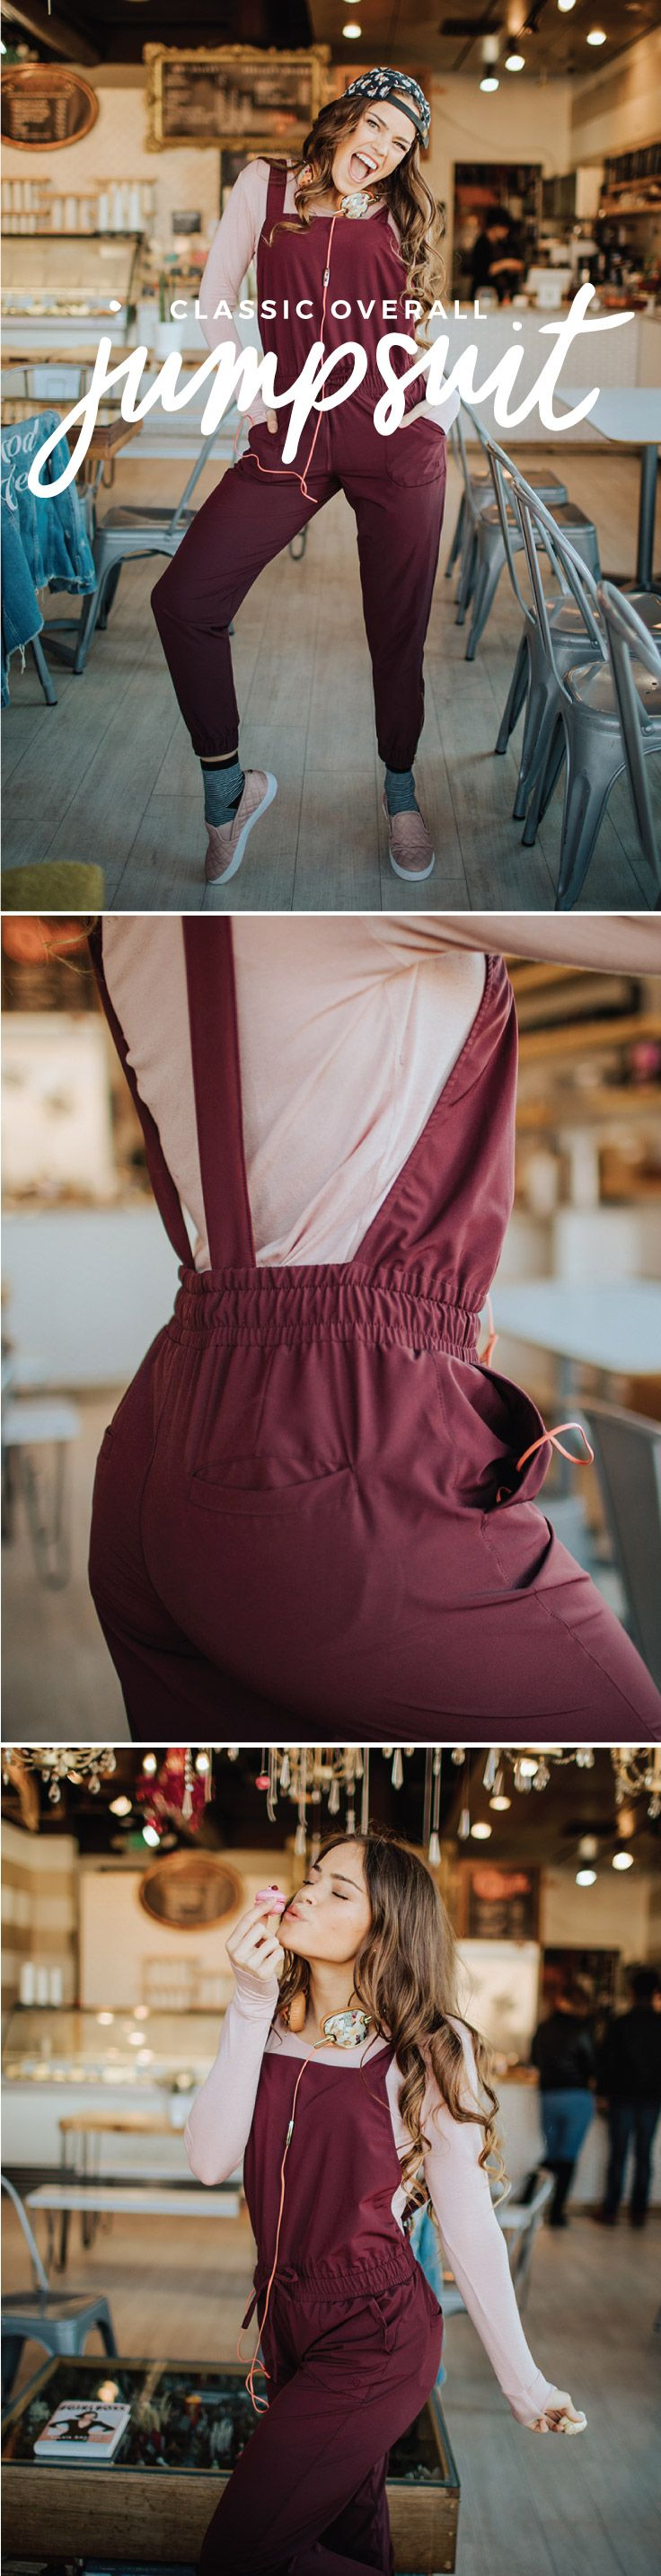 NEW ARRIVALS! Say hello to our Classic Overall Jumpsuit in beautiful Wine. Featuring the same easy fit and gold zippers as our bestselling V-Neck Overall Jumpsuit, but now with a classic straight, square neck at front. Adjustable straps make for the perfect fit (plus you can criss cross them to mix it up!). Pair with one of our cozy Go Long Crew Tee Shirts and you're ready to hang out with friends, lounge at home or go out with your sweetheart! #rompers #jumpsuits #athleisure #leisure #cozy